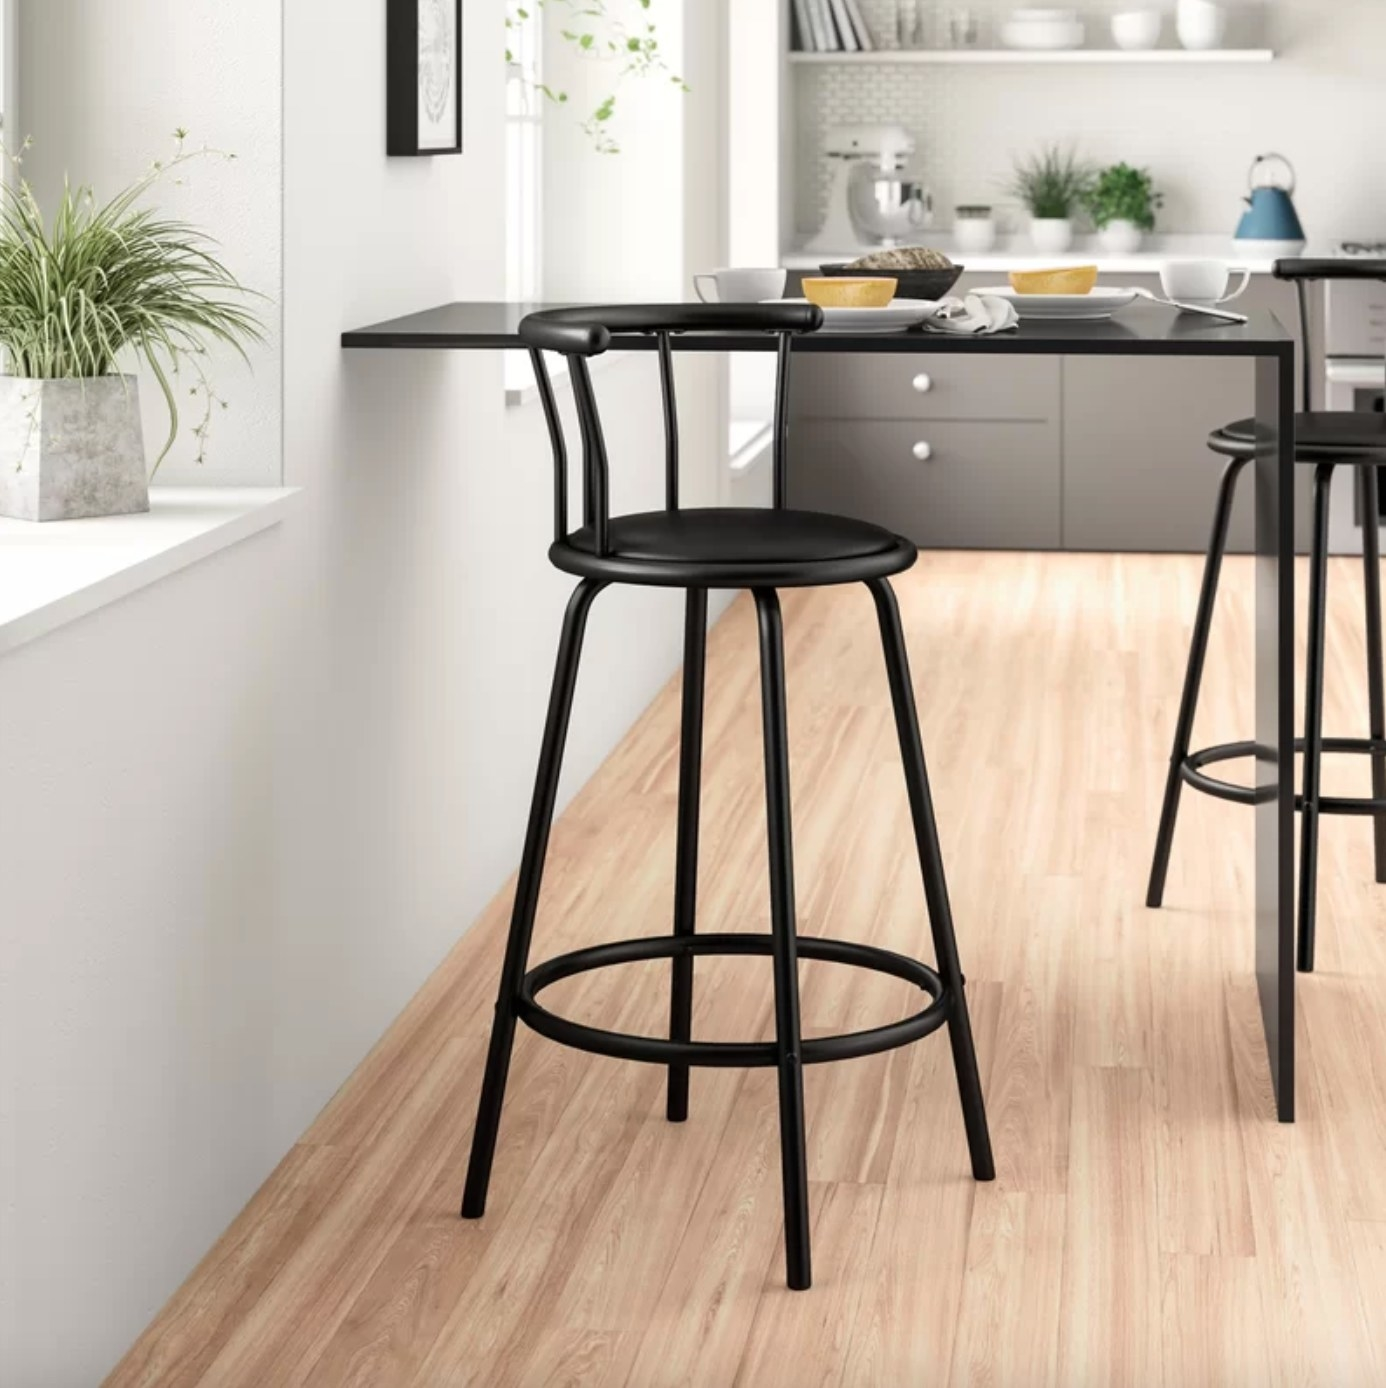 The swivel stool in black at a hightop table